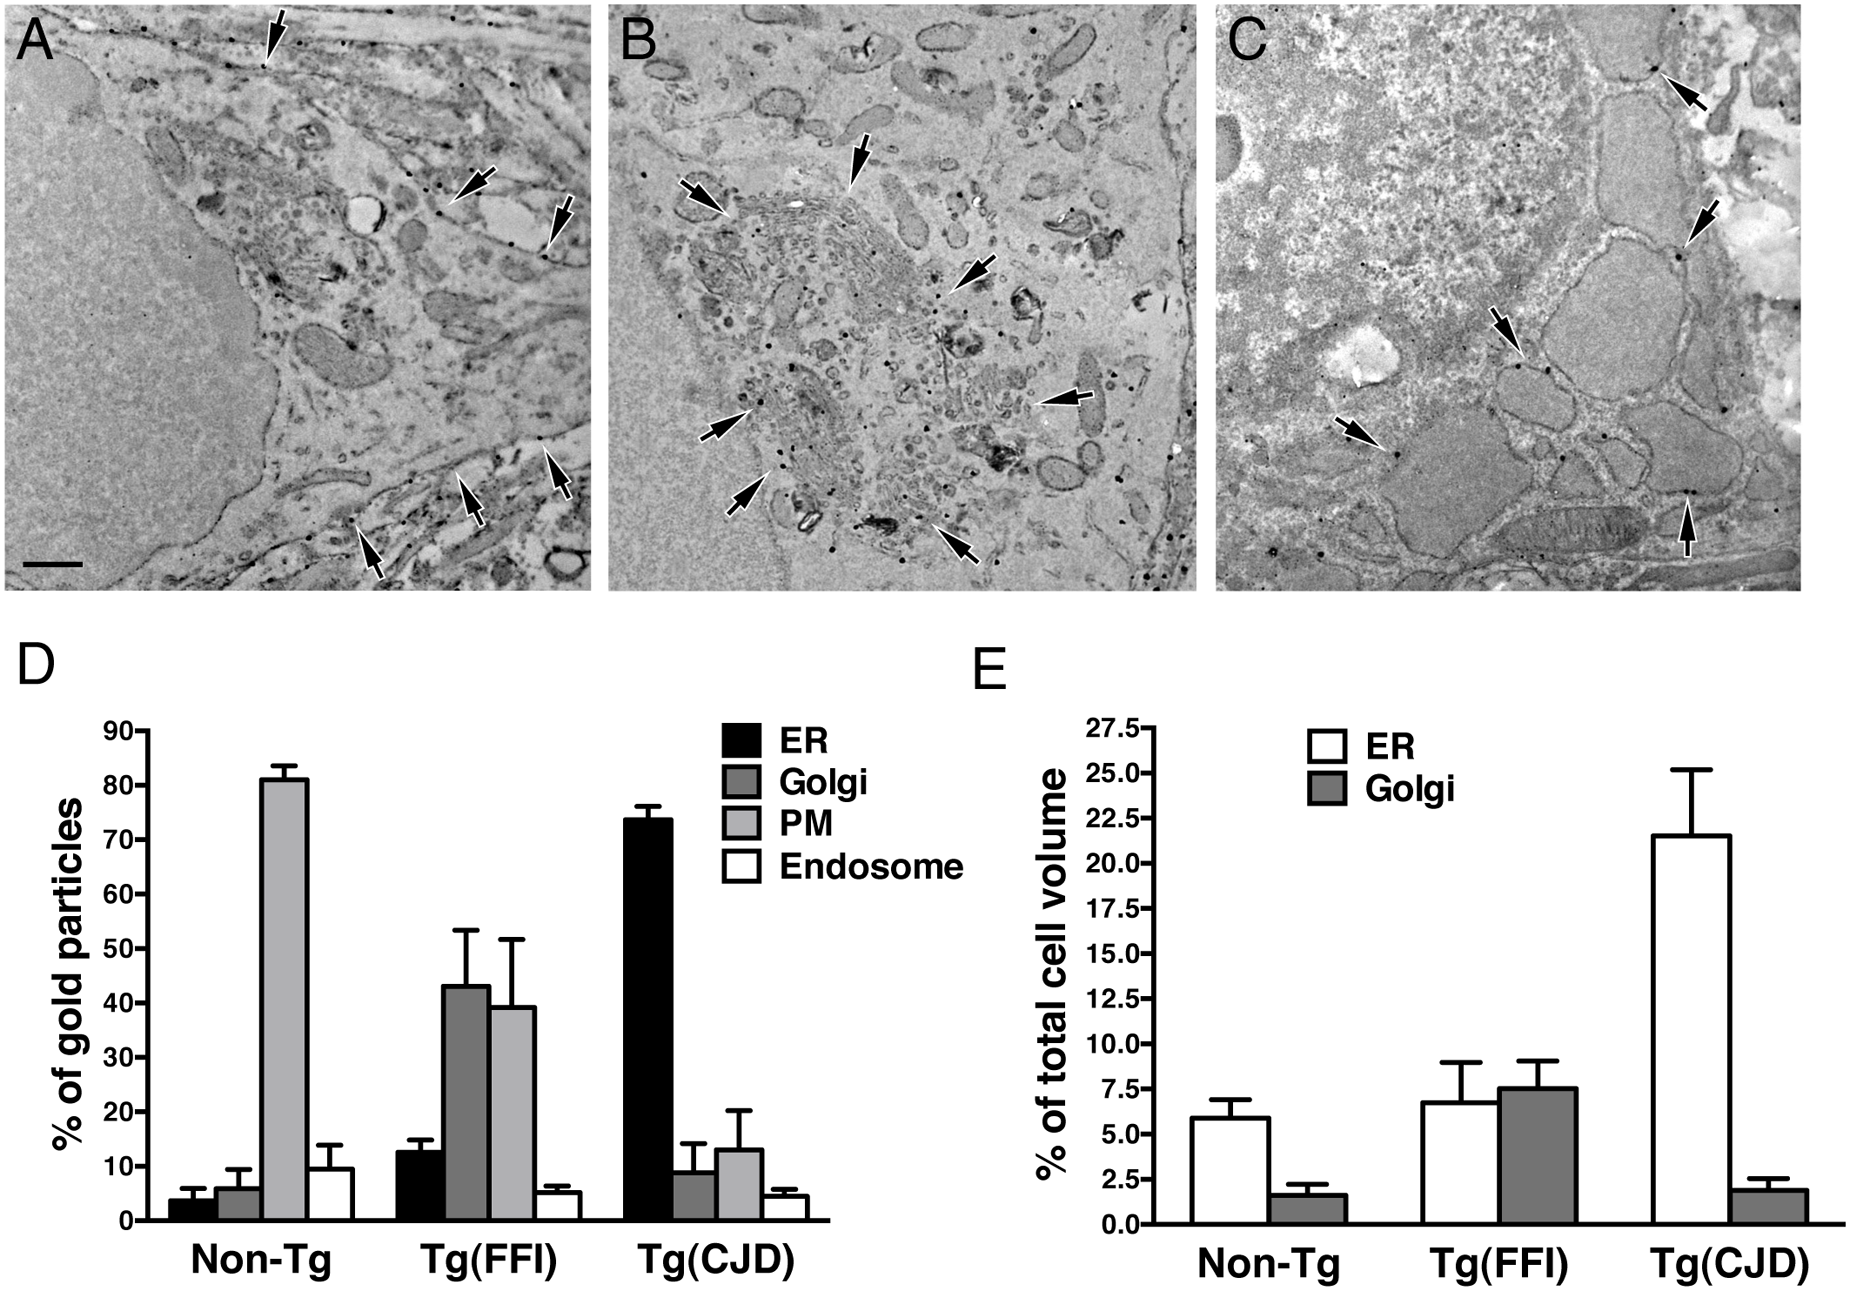 Tg(FFI) and Tg(CJD) neurons show different intracellular PrP accumulations and morphological abnormalities of transport organelles.